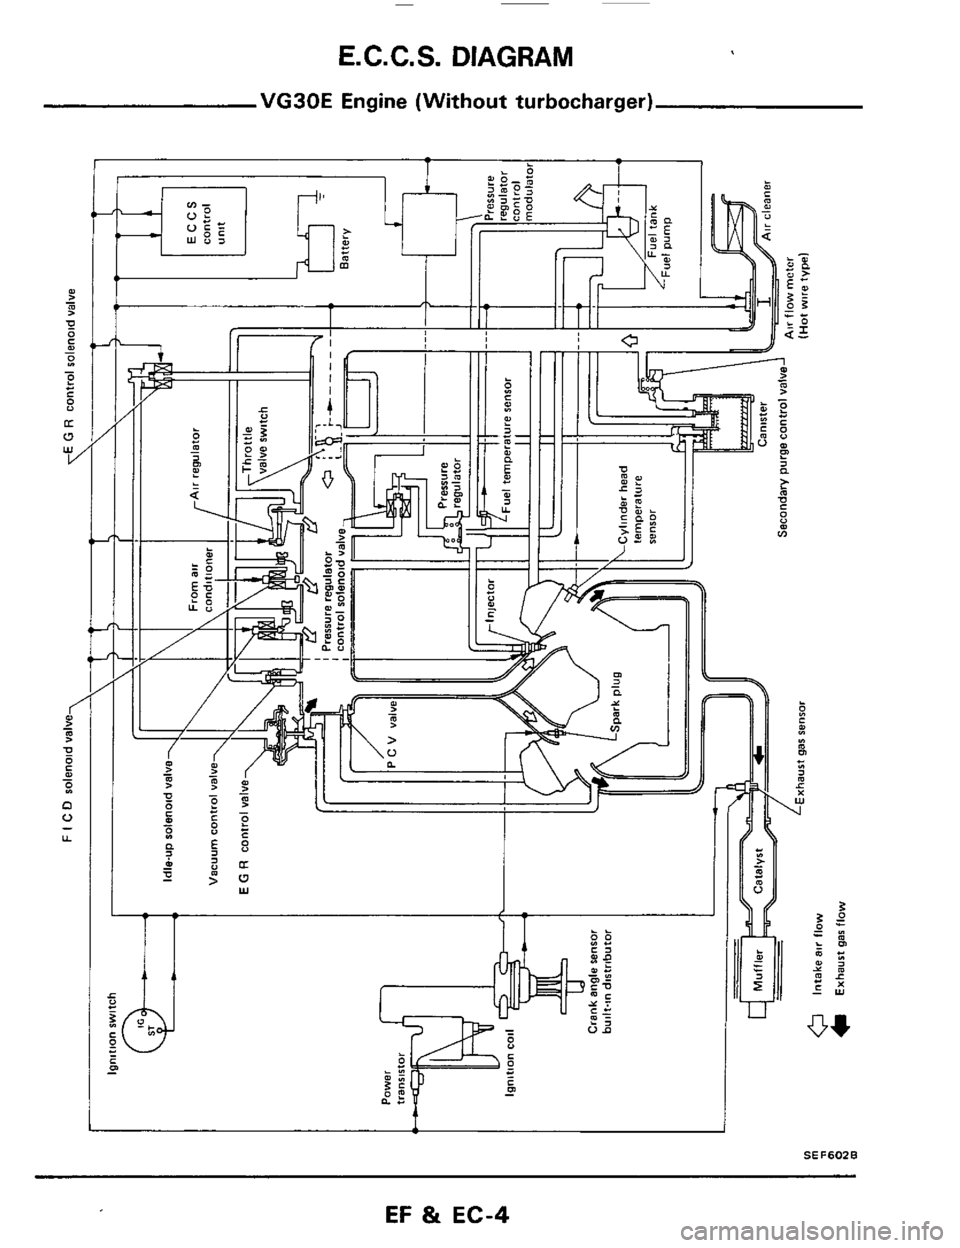 Engine Nissan 300zx 1984 Z31 Fuel And Emission Control System Vg30e Diagram Workshop Manual Page 4 E Cc S